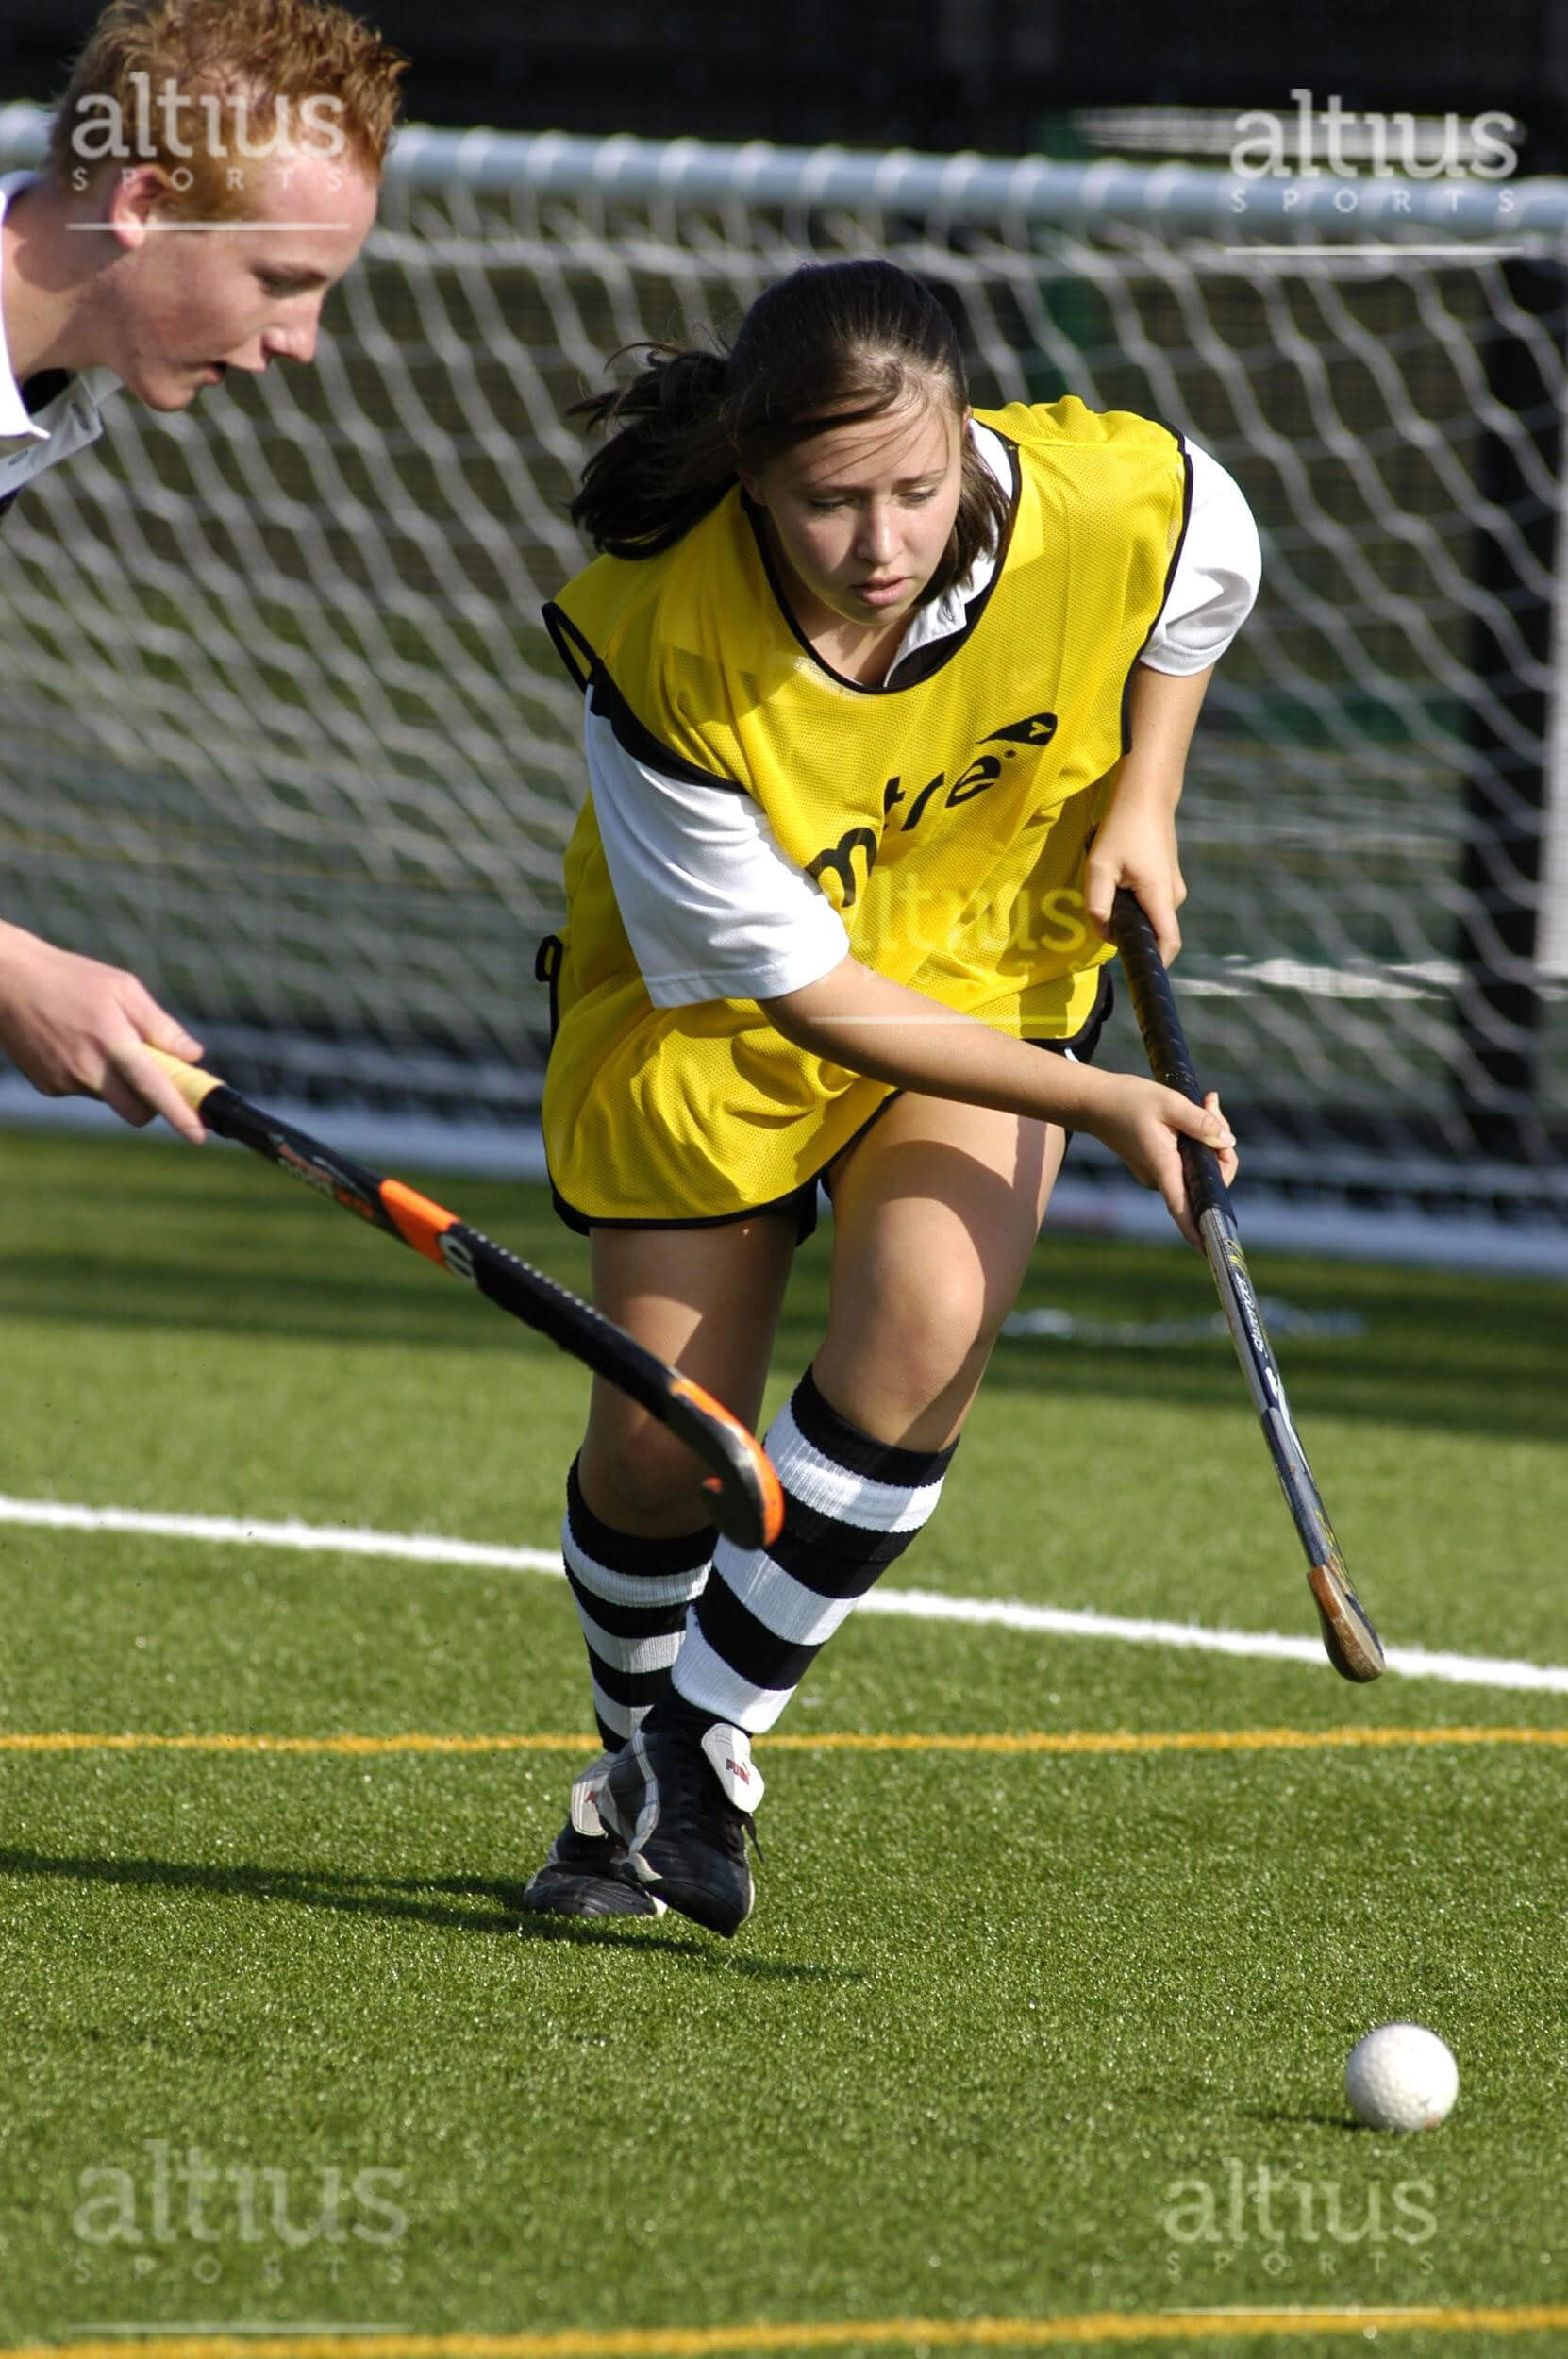 playing-hockey-on-artificial-turf